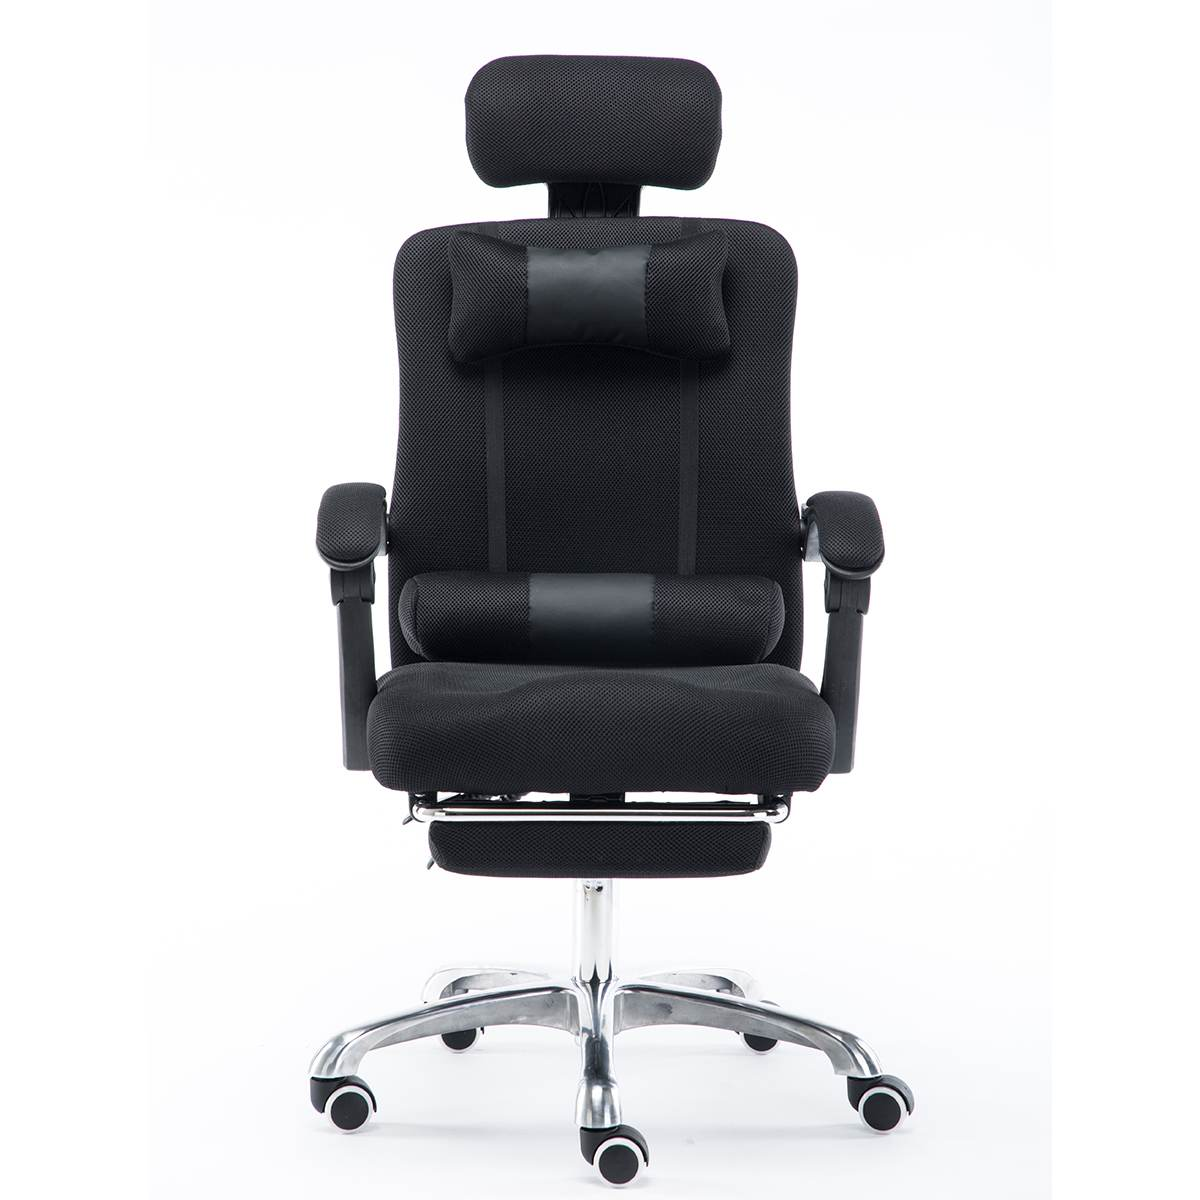 Mesh Computer Chair Lacework Office Chair Lying And Lifting Staff Armchair With Footrest Comfortable Executive Office Chair